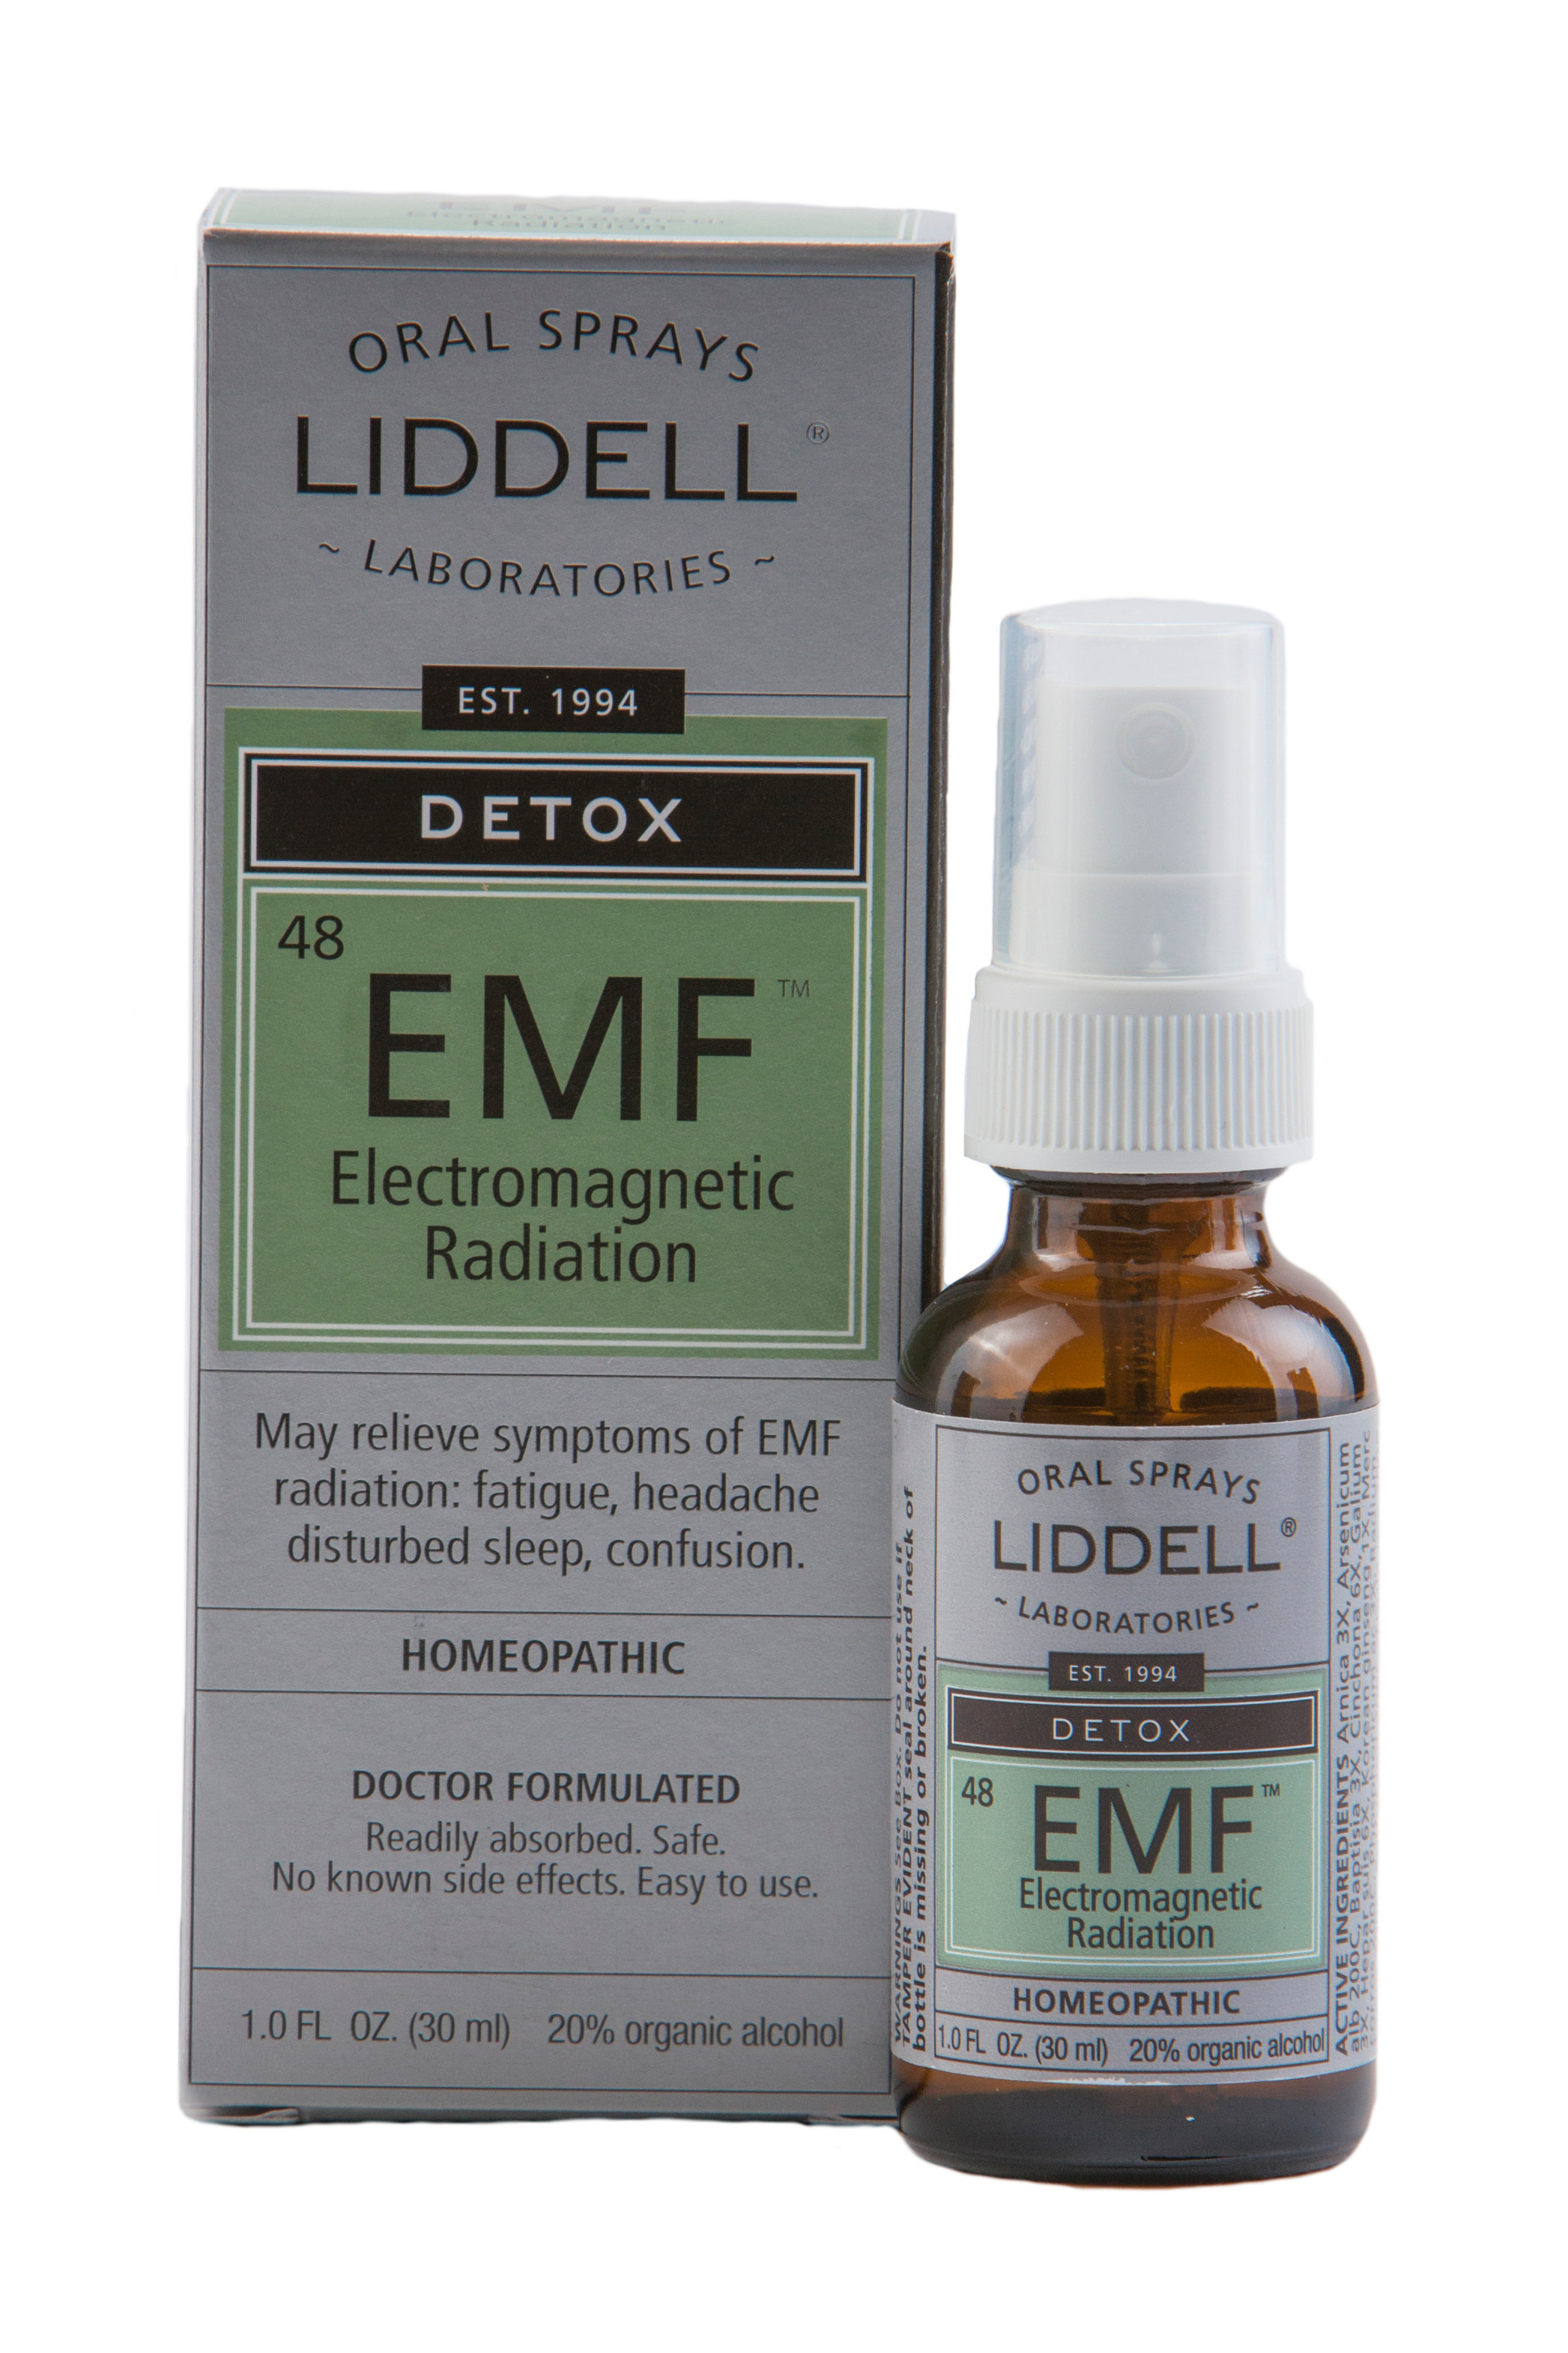 EMF, Electromagnetic Radiation - Detox